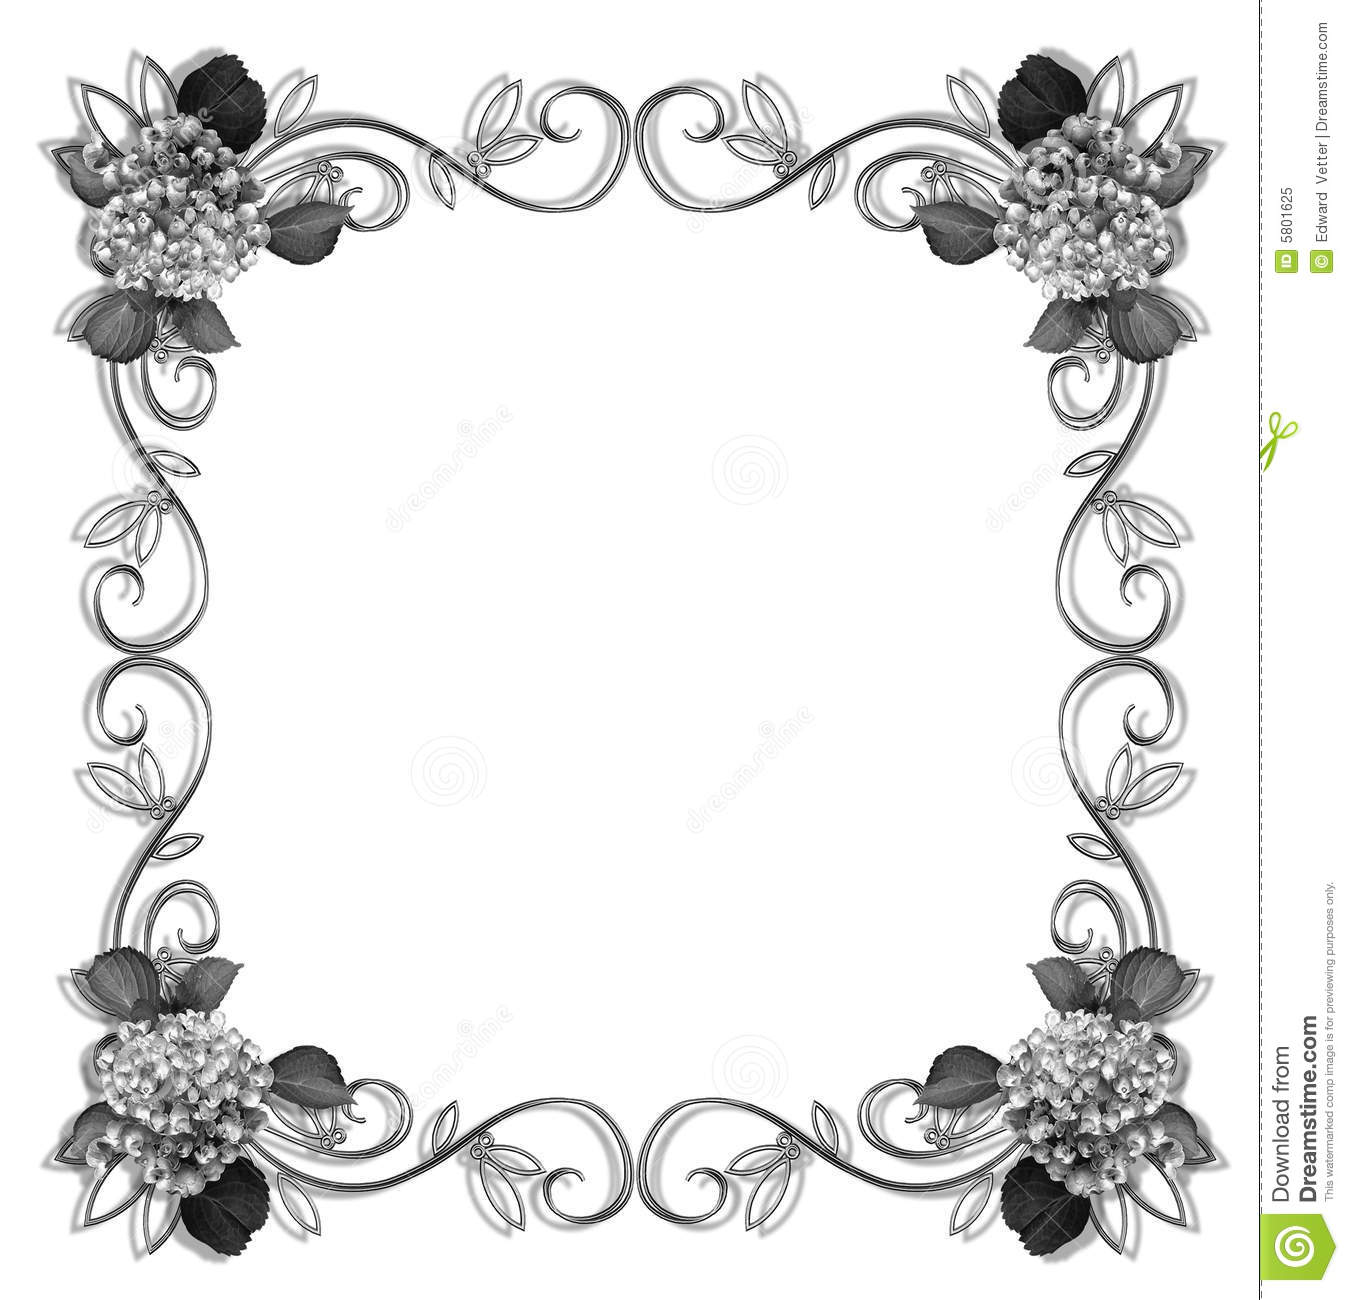 Floral Border Design Element Black And White